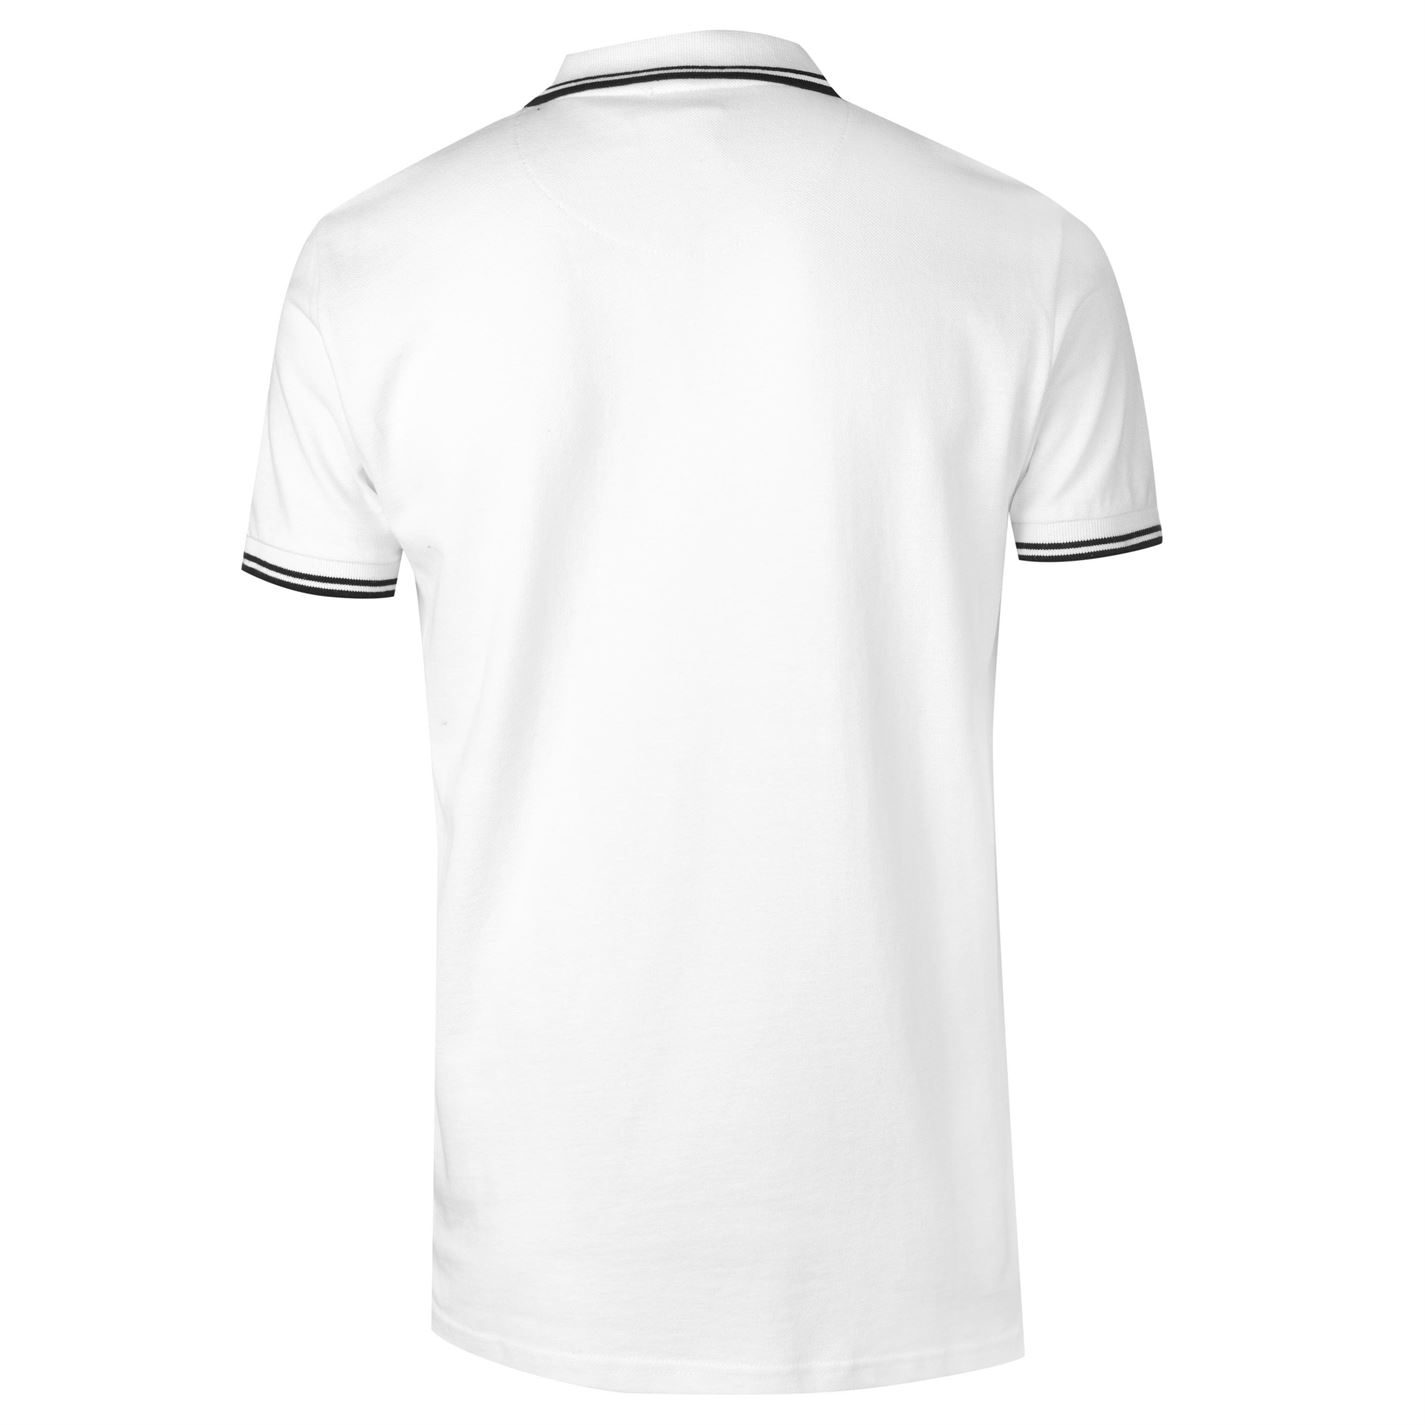 VOI-Mens-Side-Logo-Polo-Shirt-Slim-Fit-Tee-Top-Short-Sleeve-Lightweight-Cotton thumbnail 4